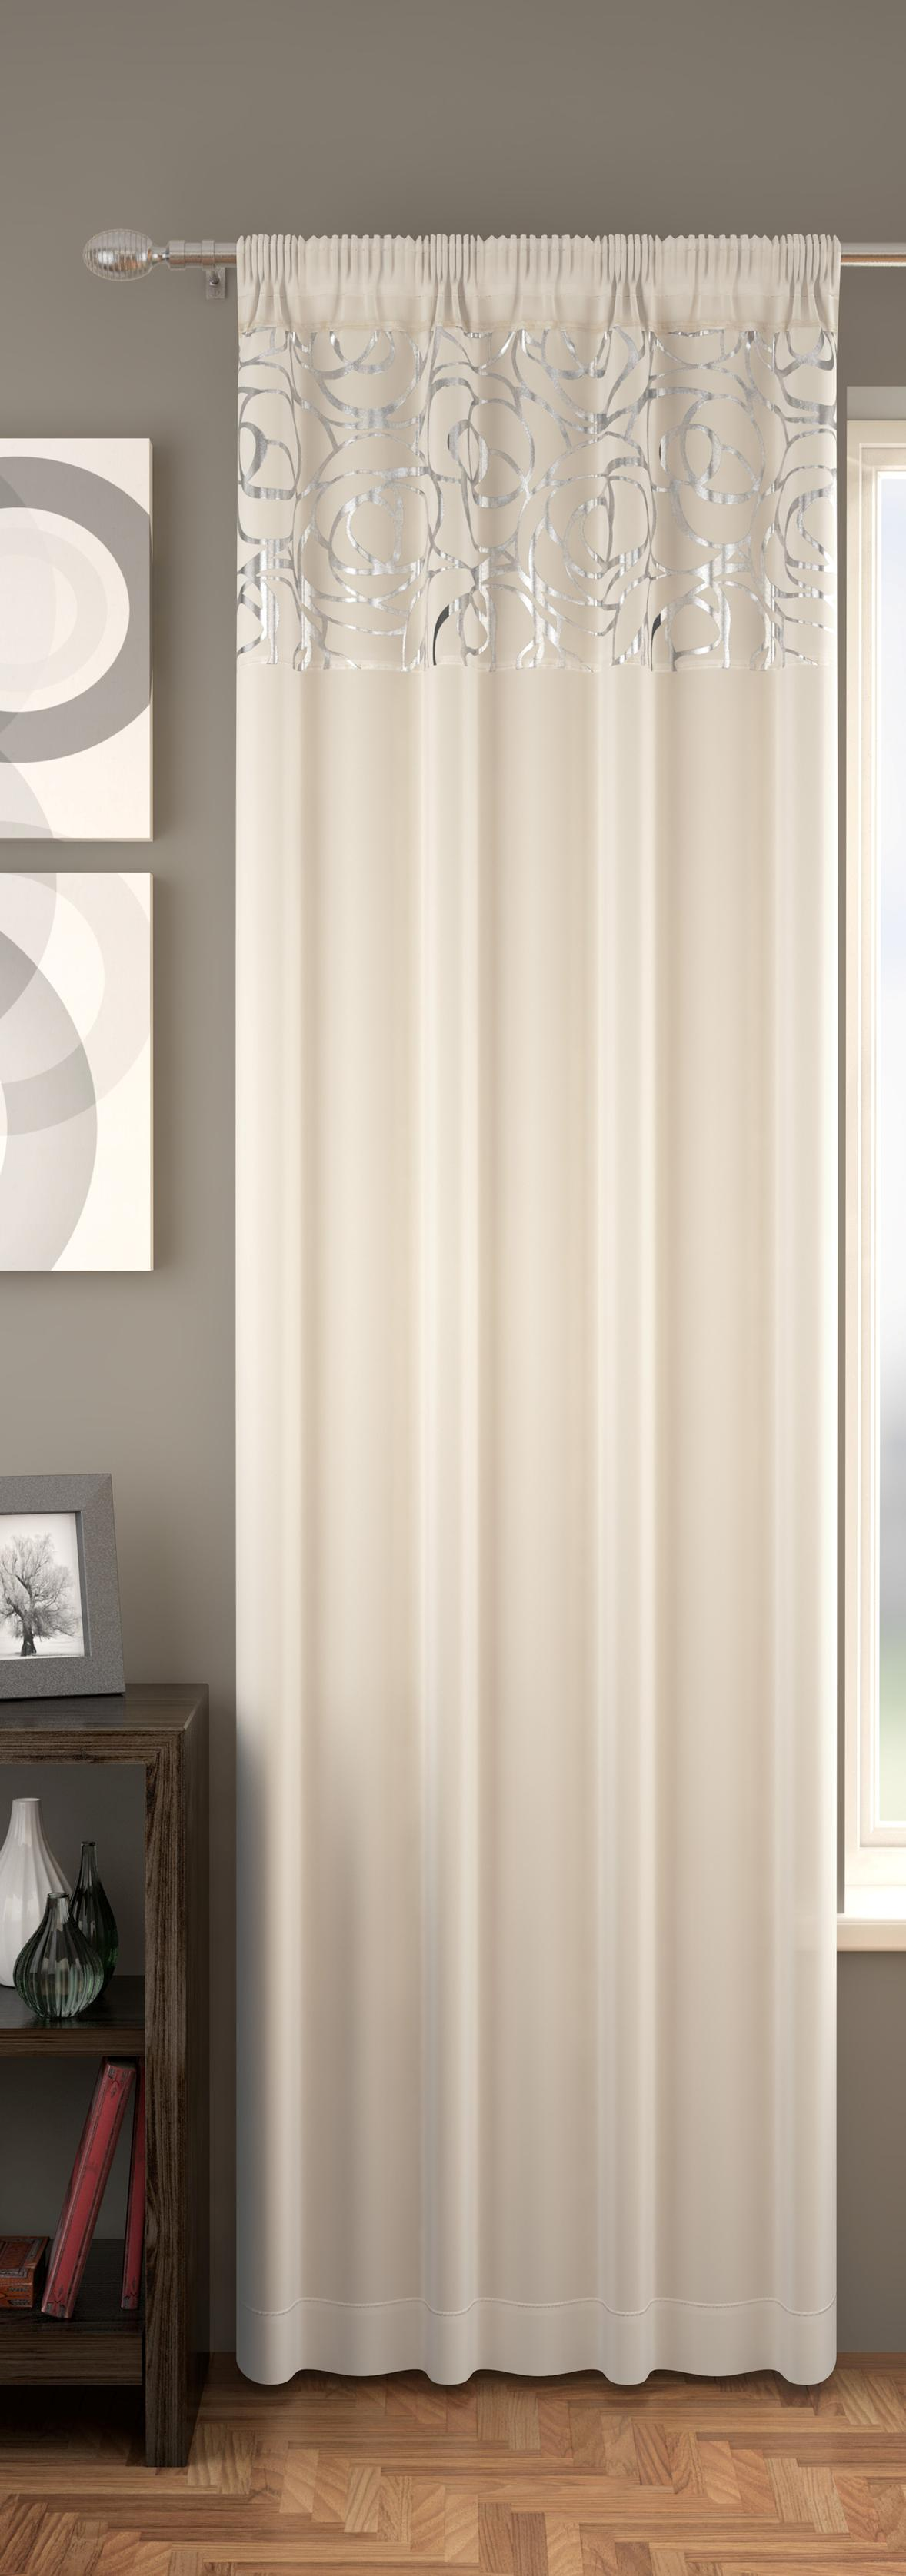 Arran Voile Panel Curtains At Home